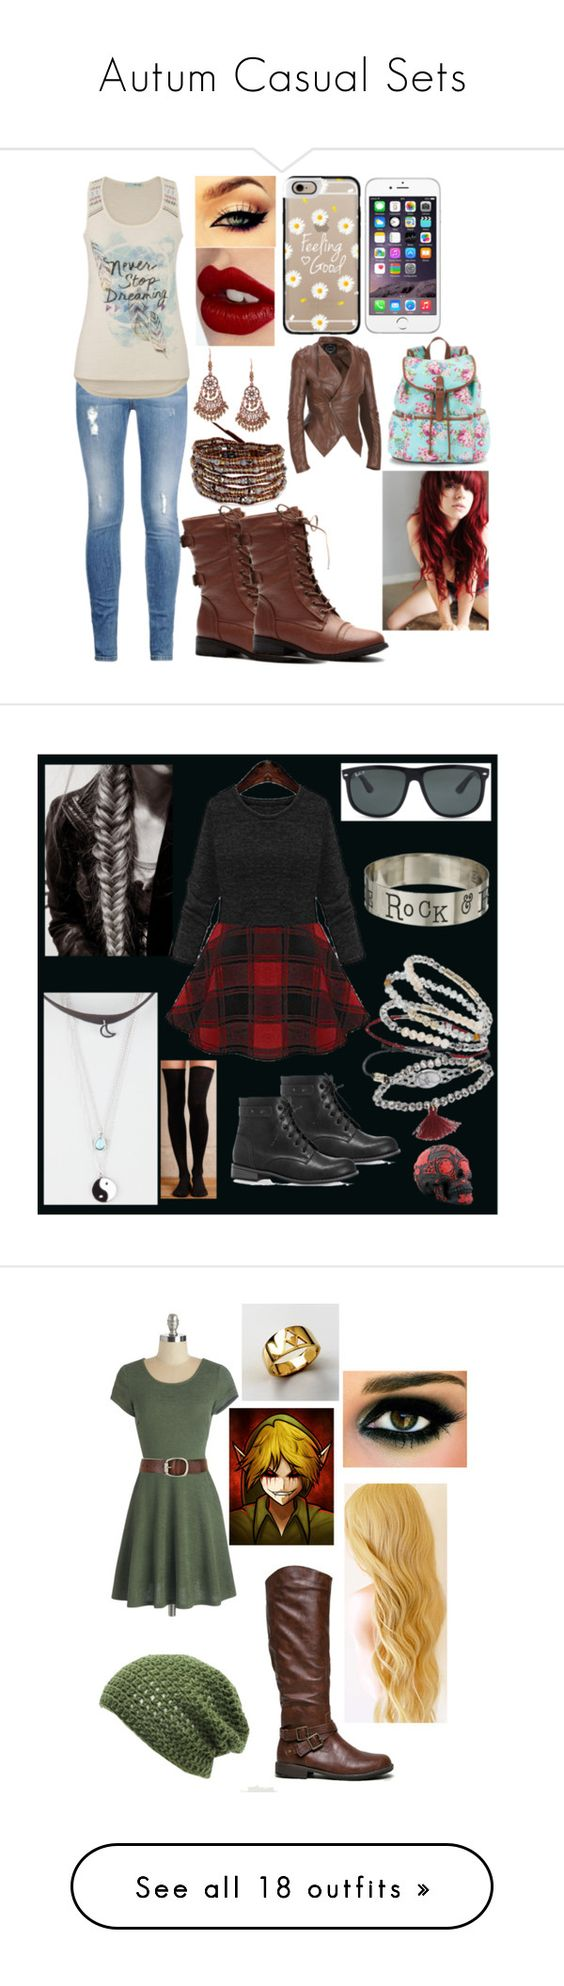 """""""Autum Casual Sets"""" by peacerecipedatabase ❤ liked on Polyvore featuring STELLA McCARTNEY, maurices, Chan Luu, 1928, Charlotte Tilbury, Casetify, Candie's, Jack Black, Hansel from Basel and Avenue"""